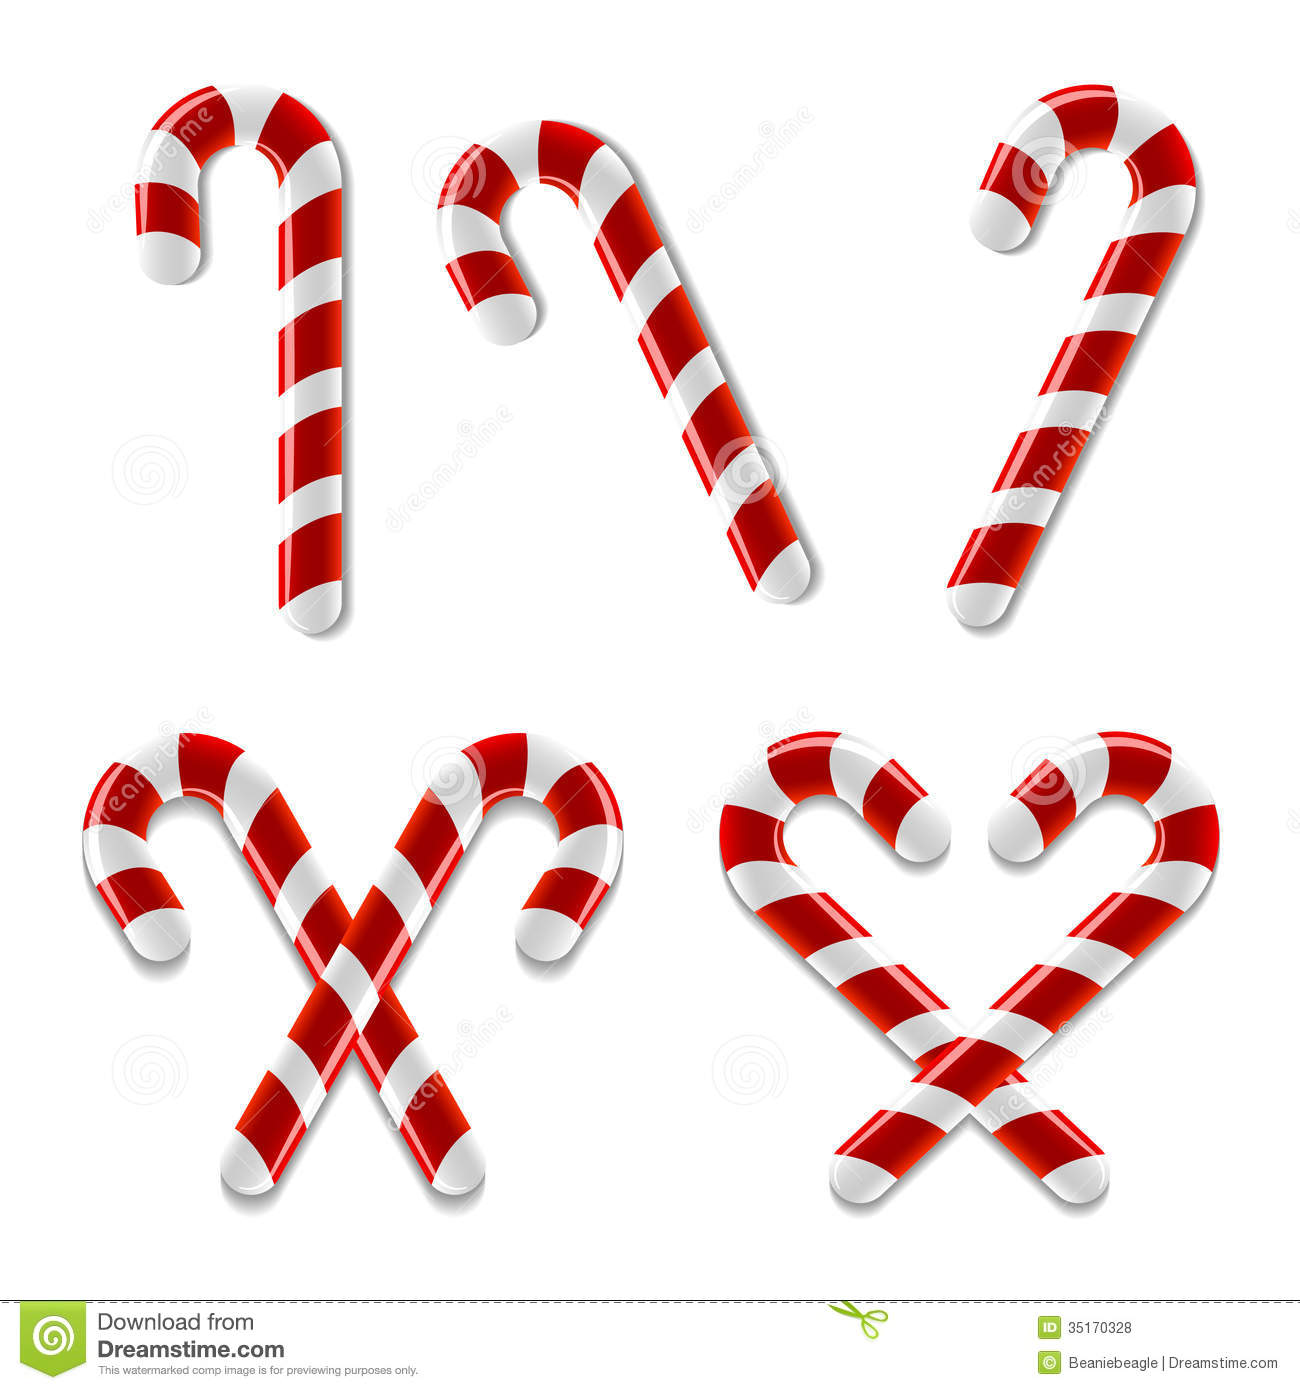 Candy Cane Icons Royalty Free Stock Photos - Image: 35170328